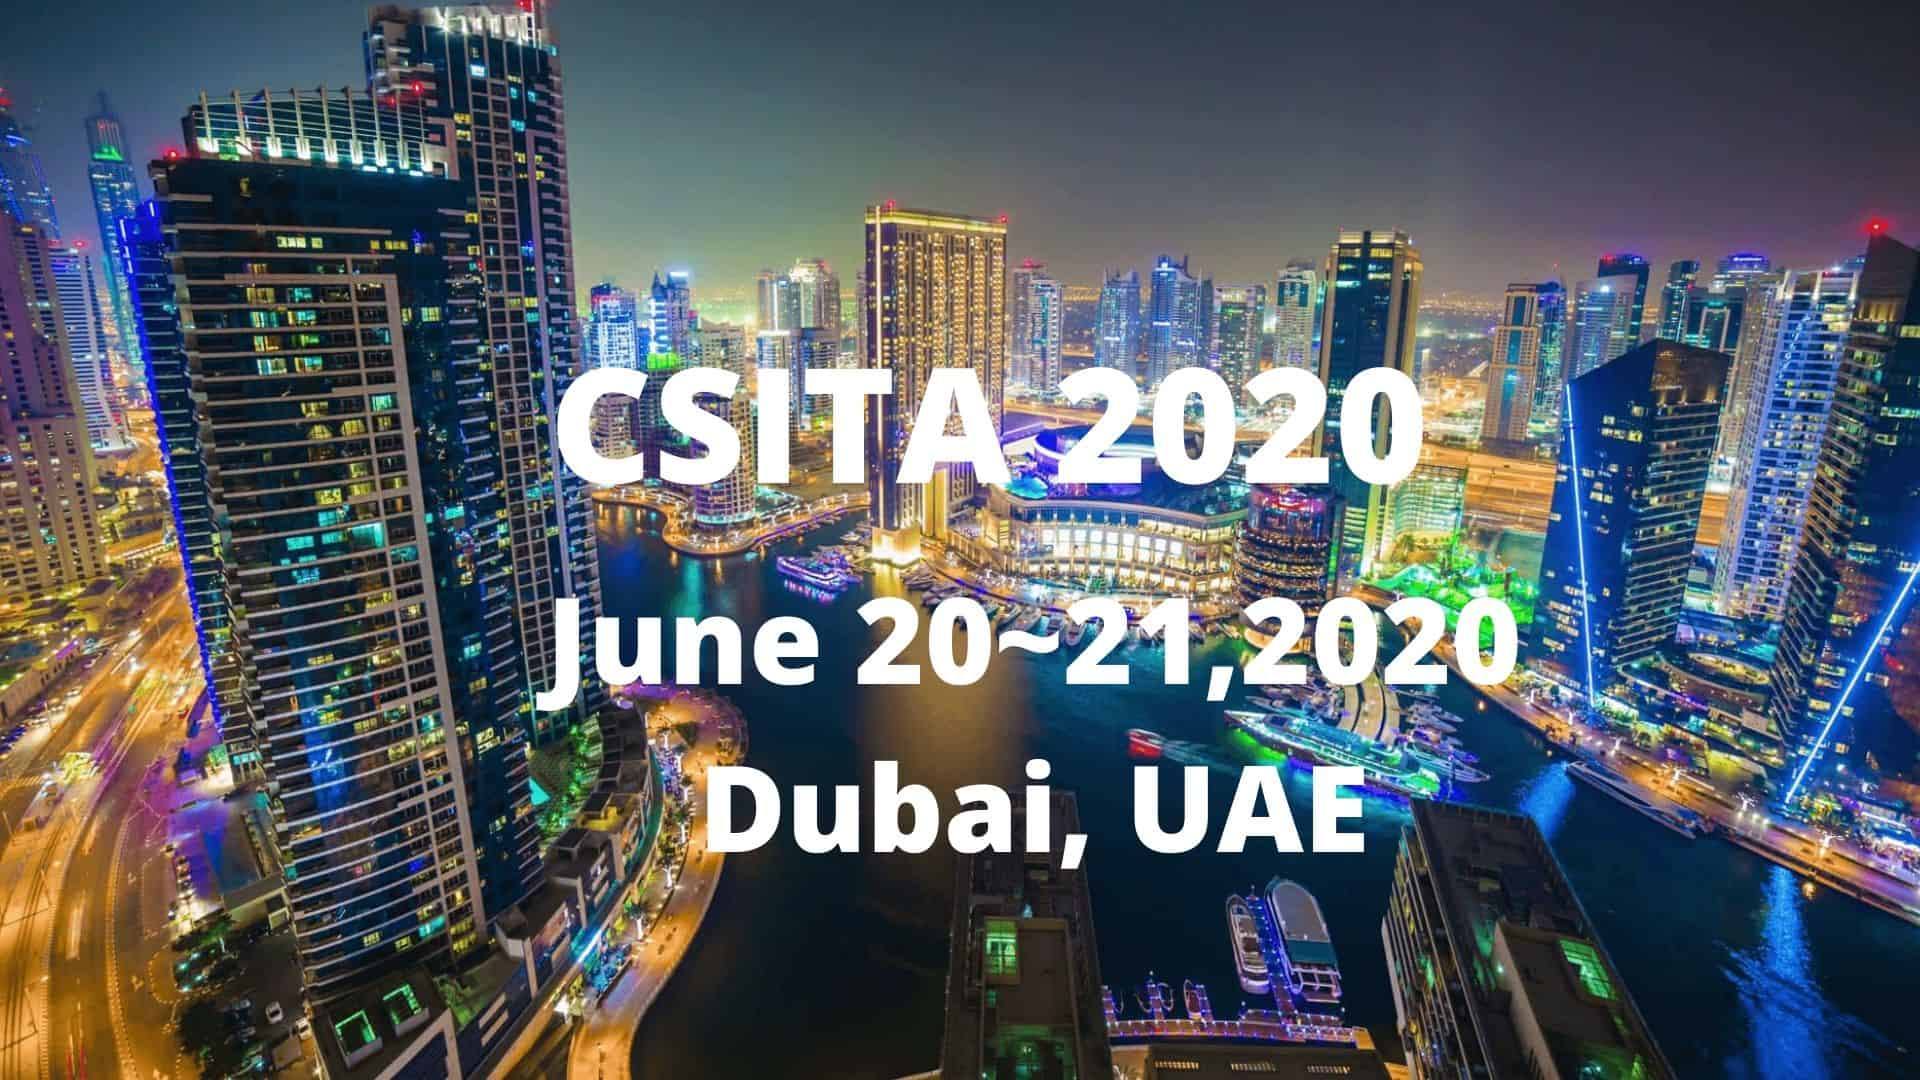 6th International Conference on Computer Science, Information Technology and Applications (CSITA 2020)